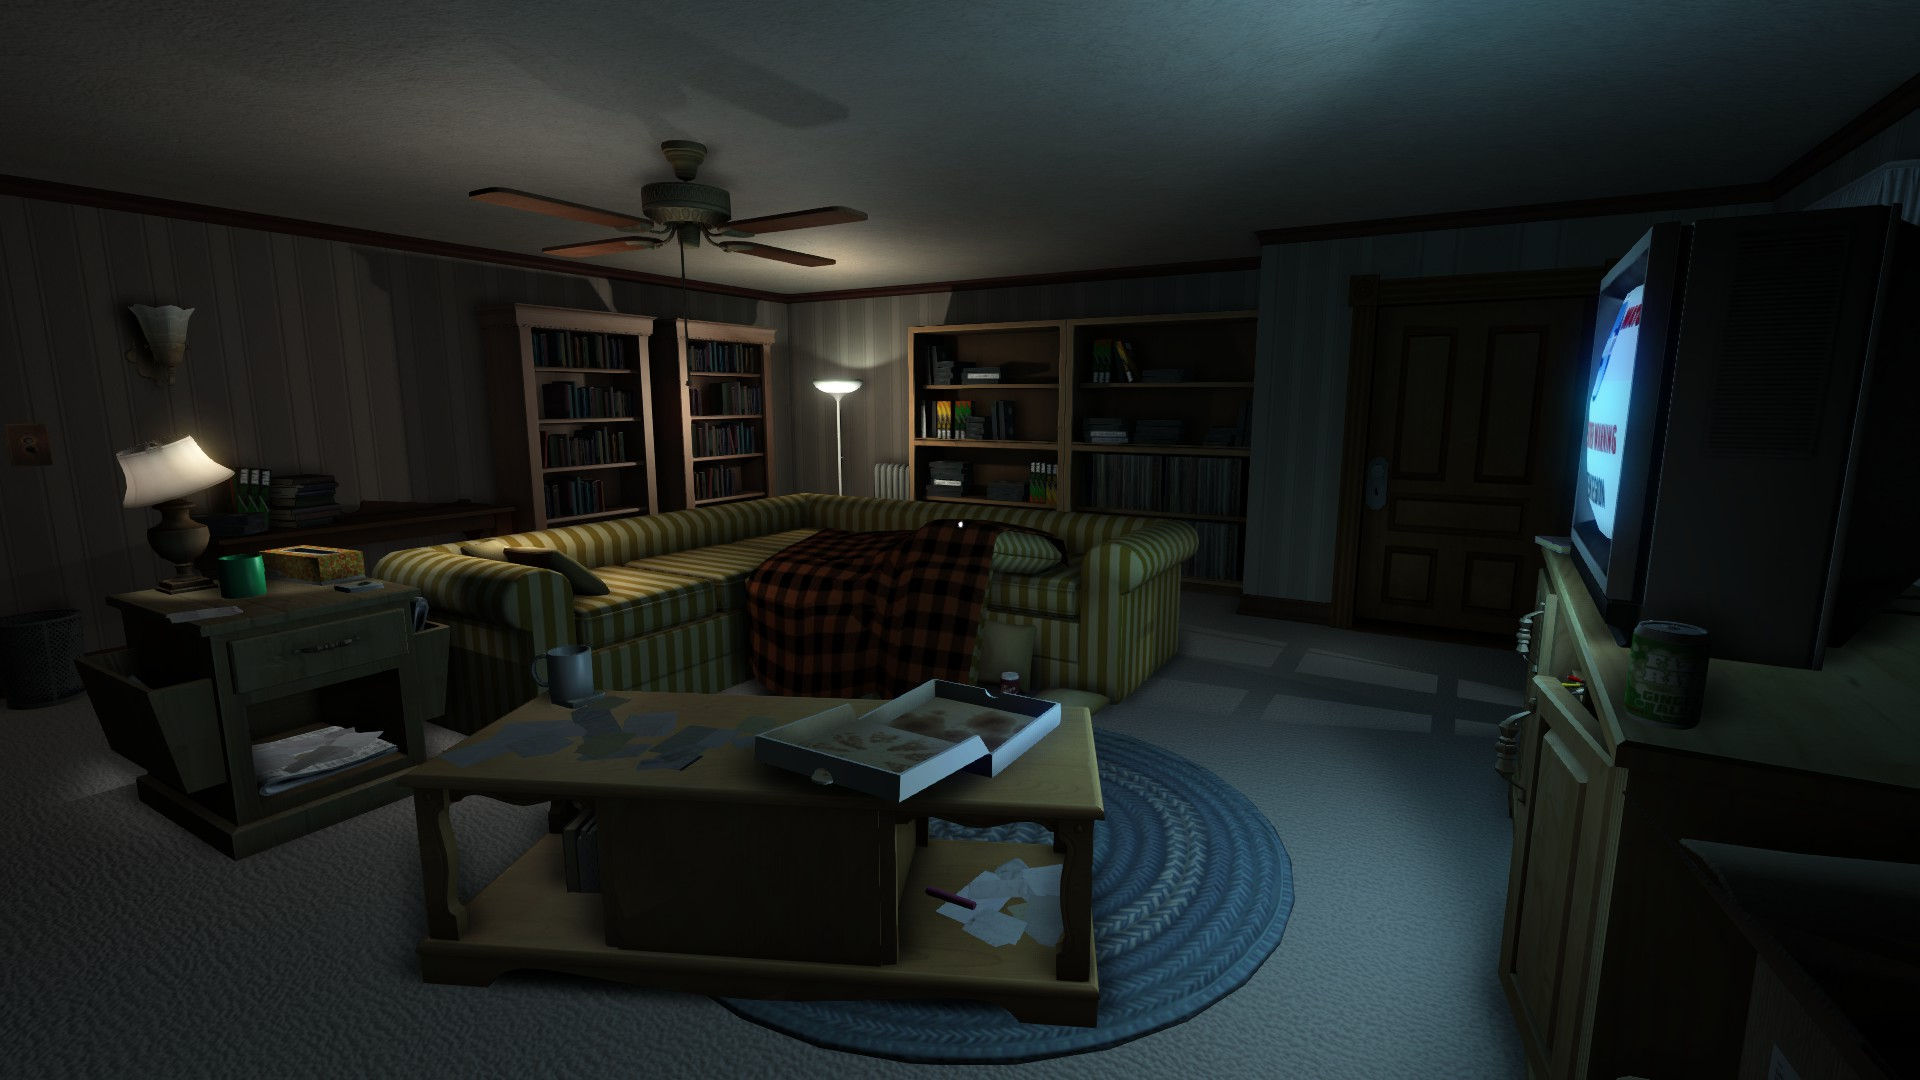 Gone Home TV Room